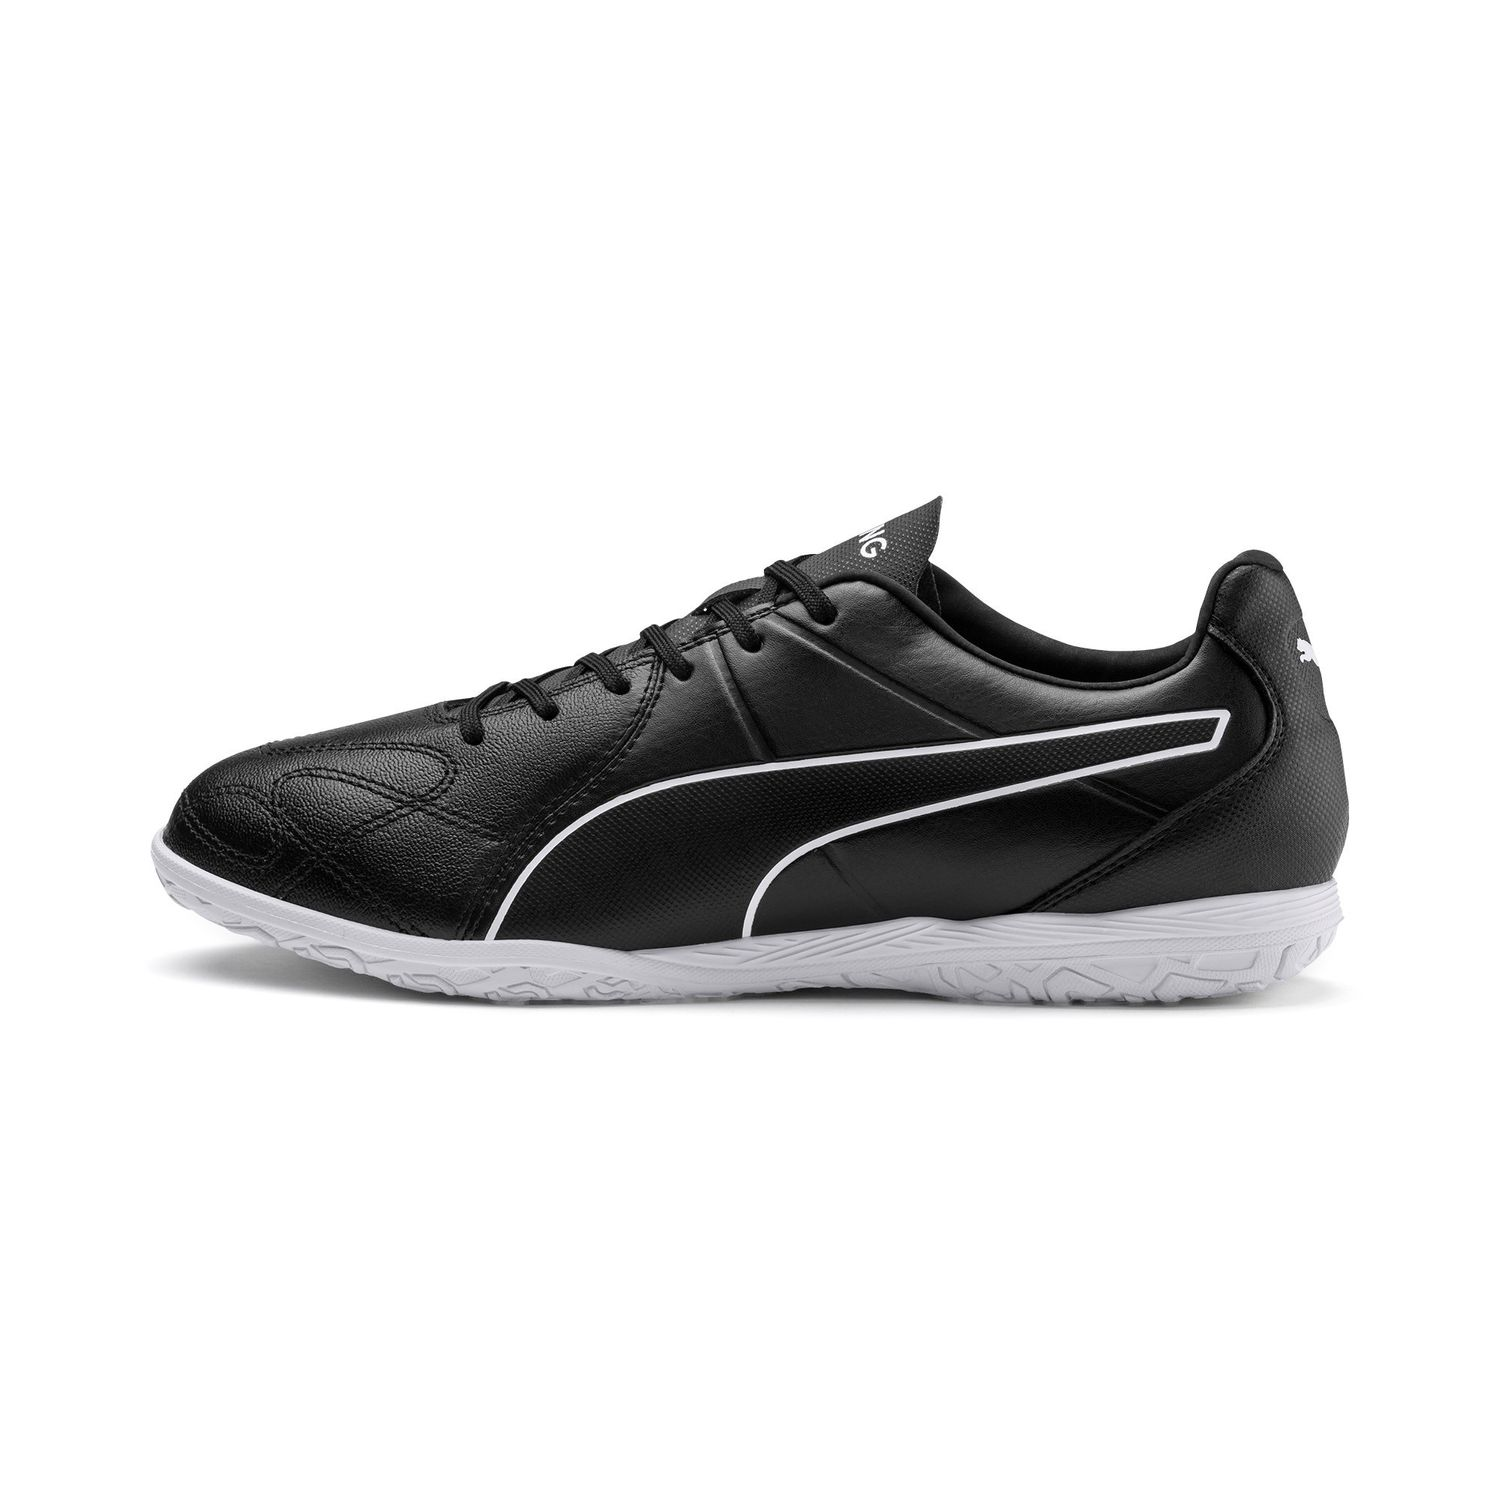 Puma King Hero It Indoor Soccer Shoes 105673 Black Puma